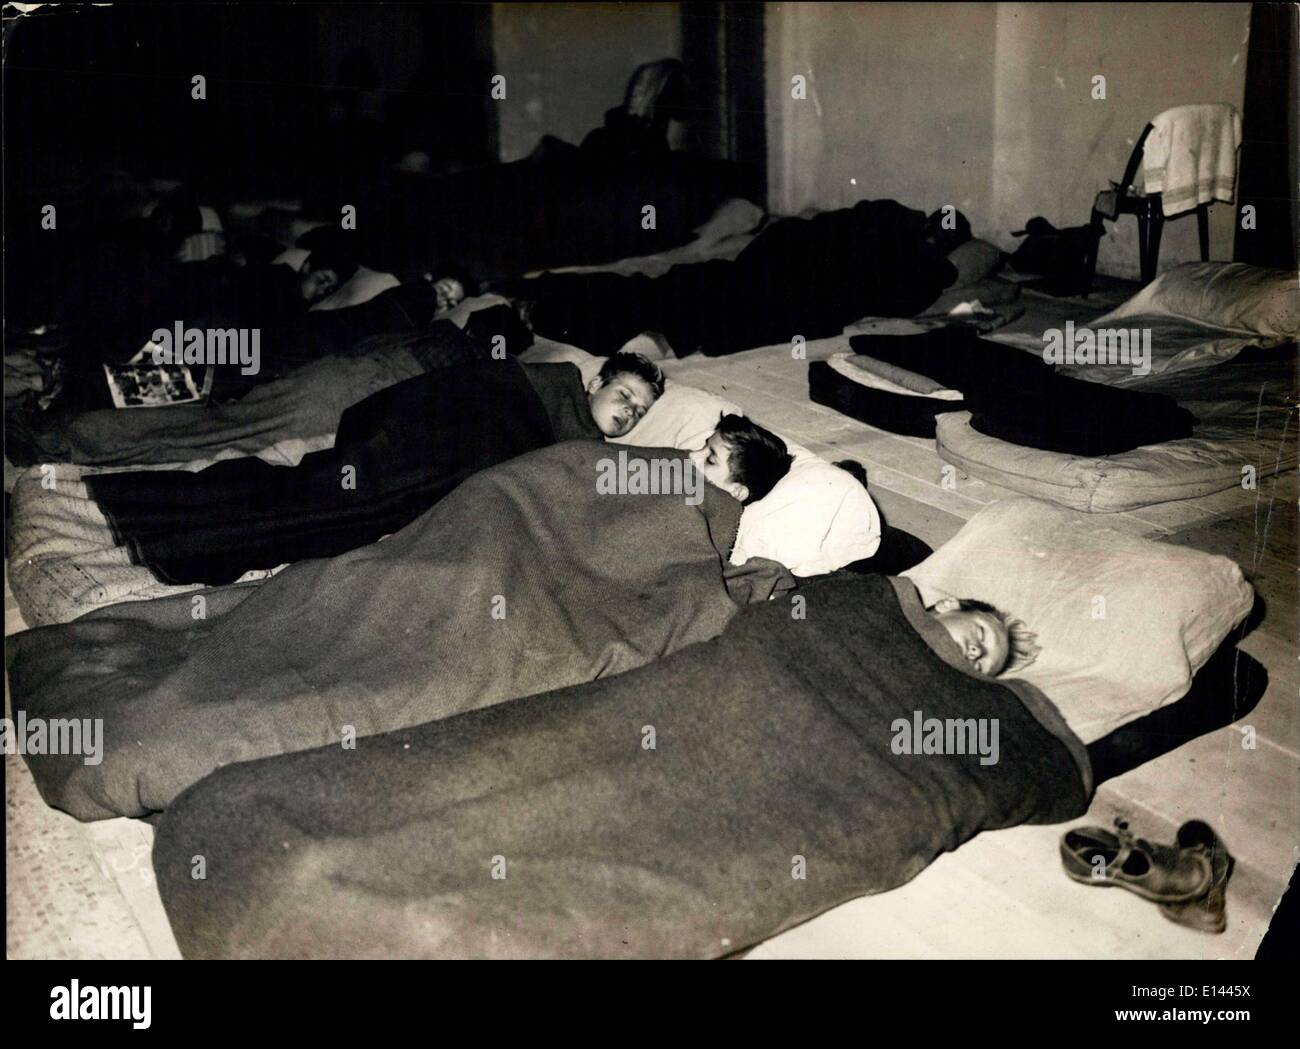 Apr. 04, 2012 - Railway Strike Not Quite Over - Sleepers Seen in The Hall of the Grand Palais Where a Dormitory Has Been organized By the French Red Cross. - Stock Image